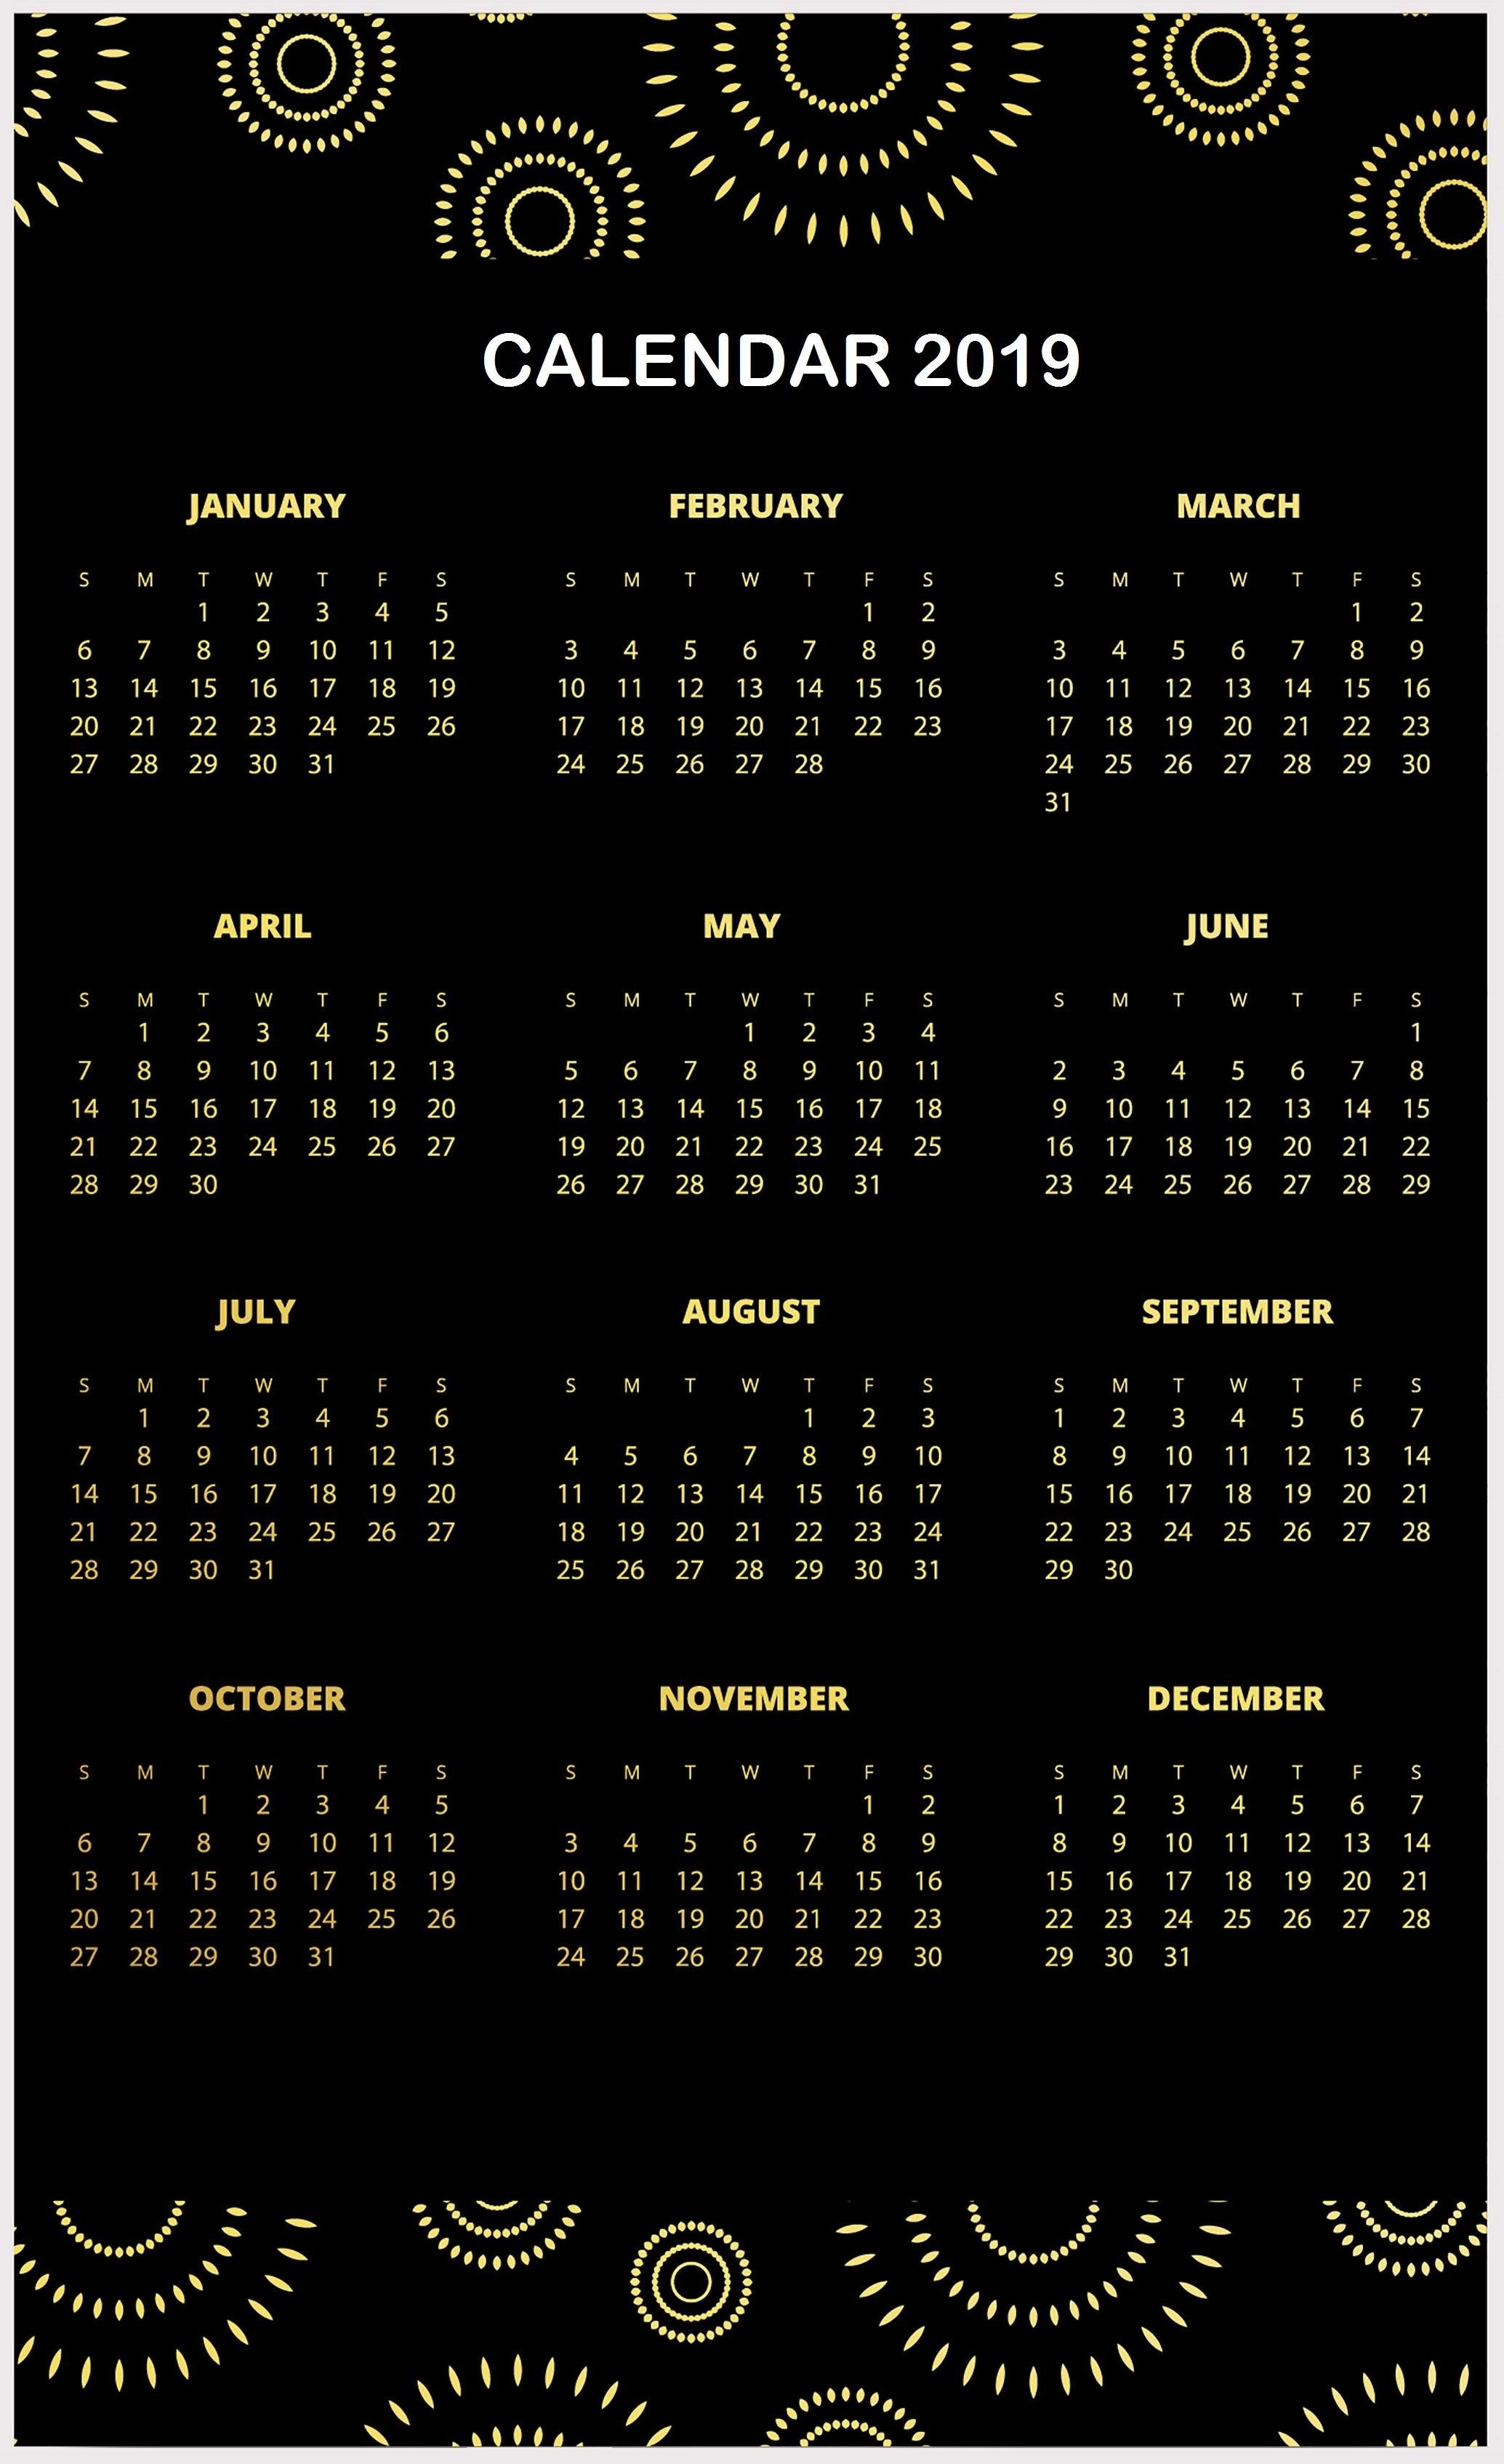 Amazing 2019 Calendar Template One Page Design Layouts | Calendar Page 3 Calendar 2019